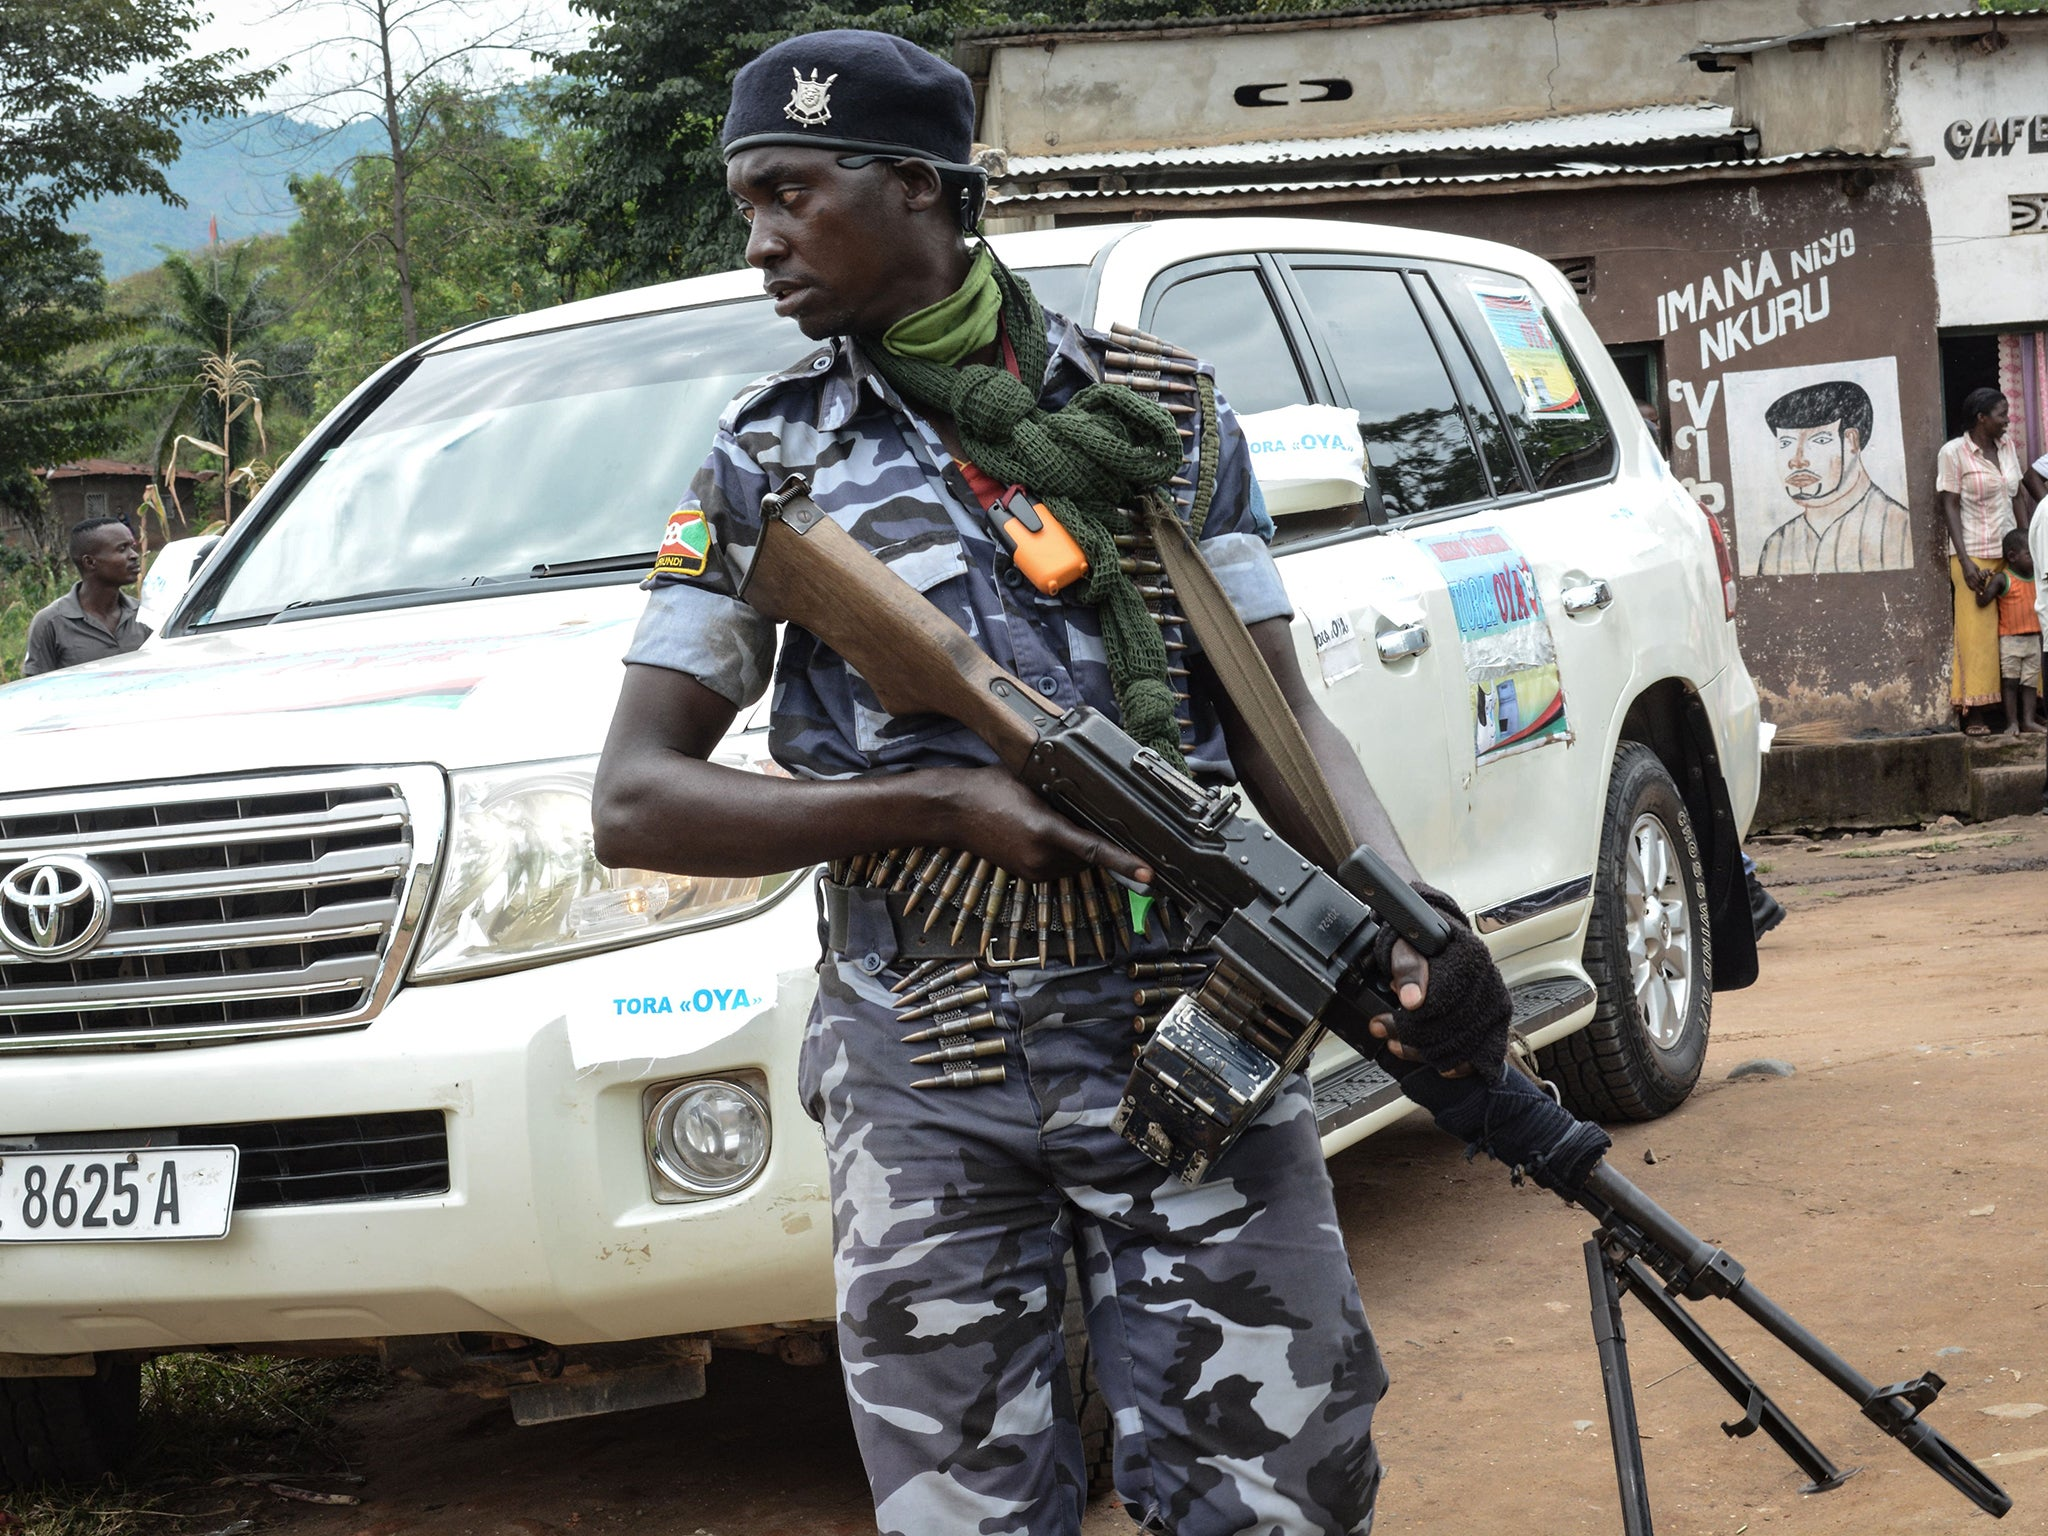 At least 26 people killed in overnight attack by 'terrorist group' in Burundi, officials say